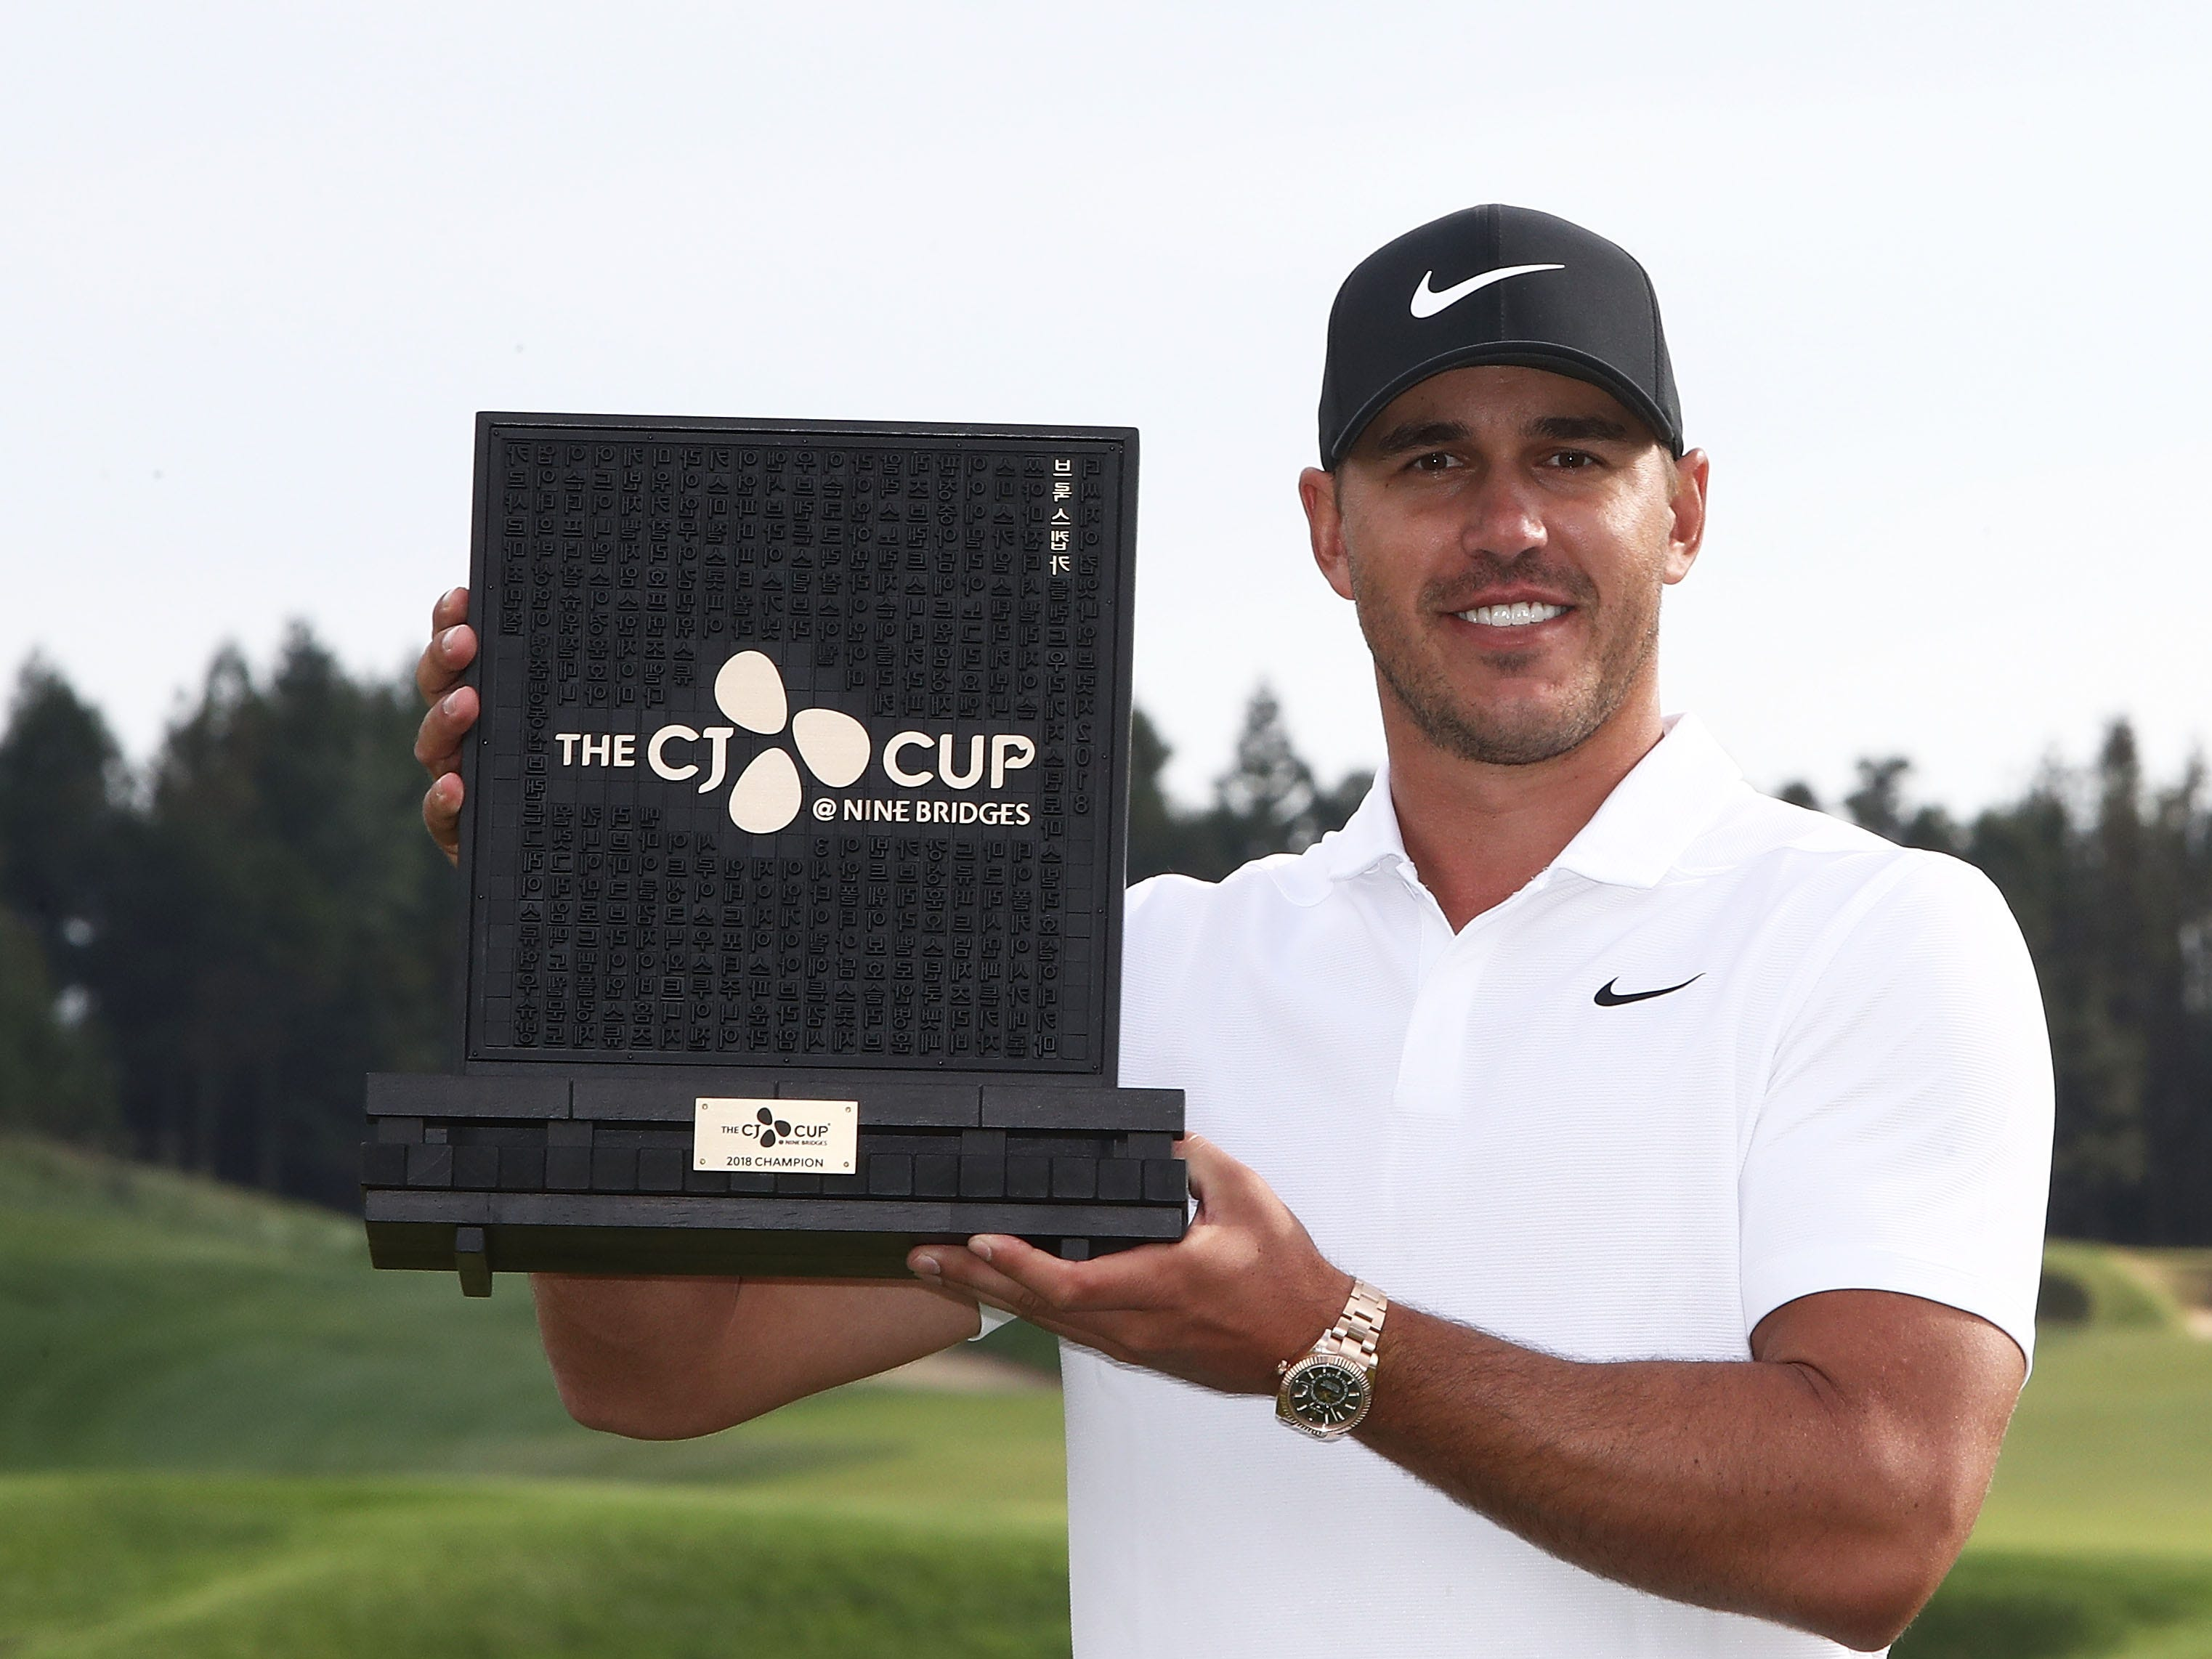 Oct. 21: Brooks Koepka poses with the trophy after winning the CJ Cup at the Nine Bridges in Jeju, South Korea.